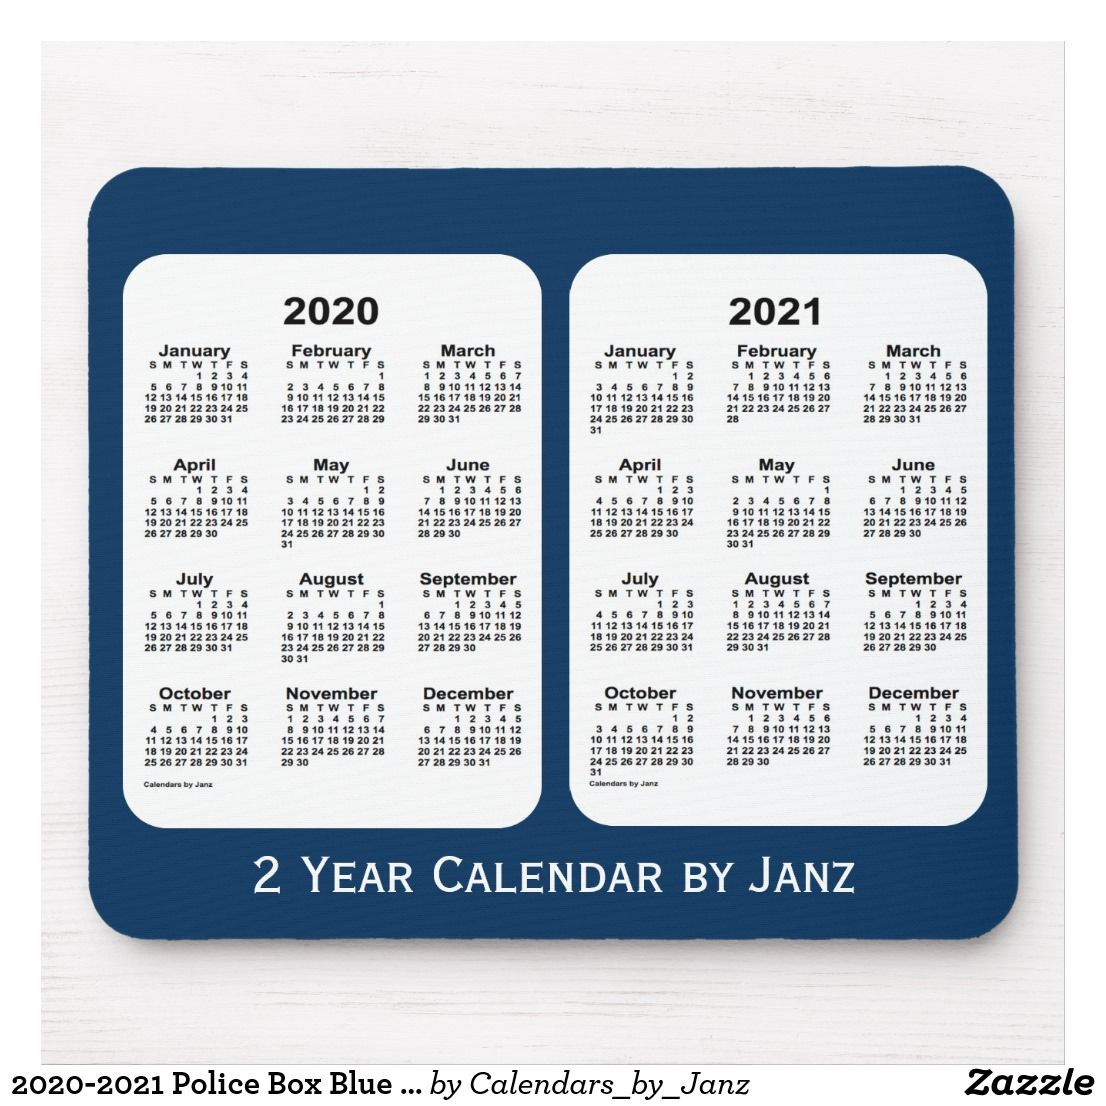 2020-2021 Police Box Blue 2 Year Calendar By Janz Mouse Pad